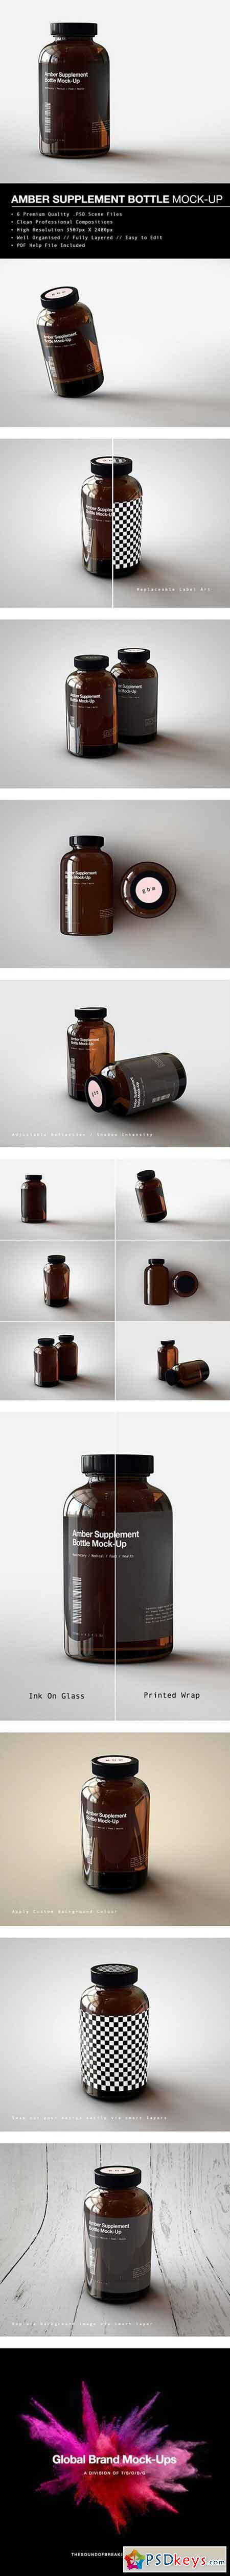 Amber Supplement Bottle Mock-Up 1654140